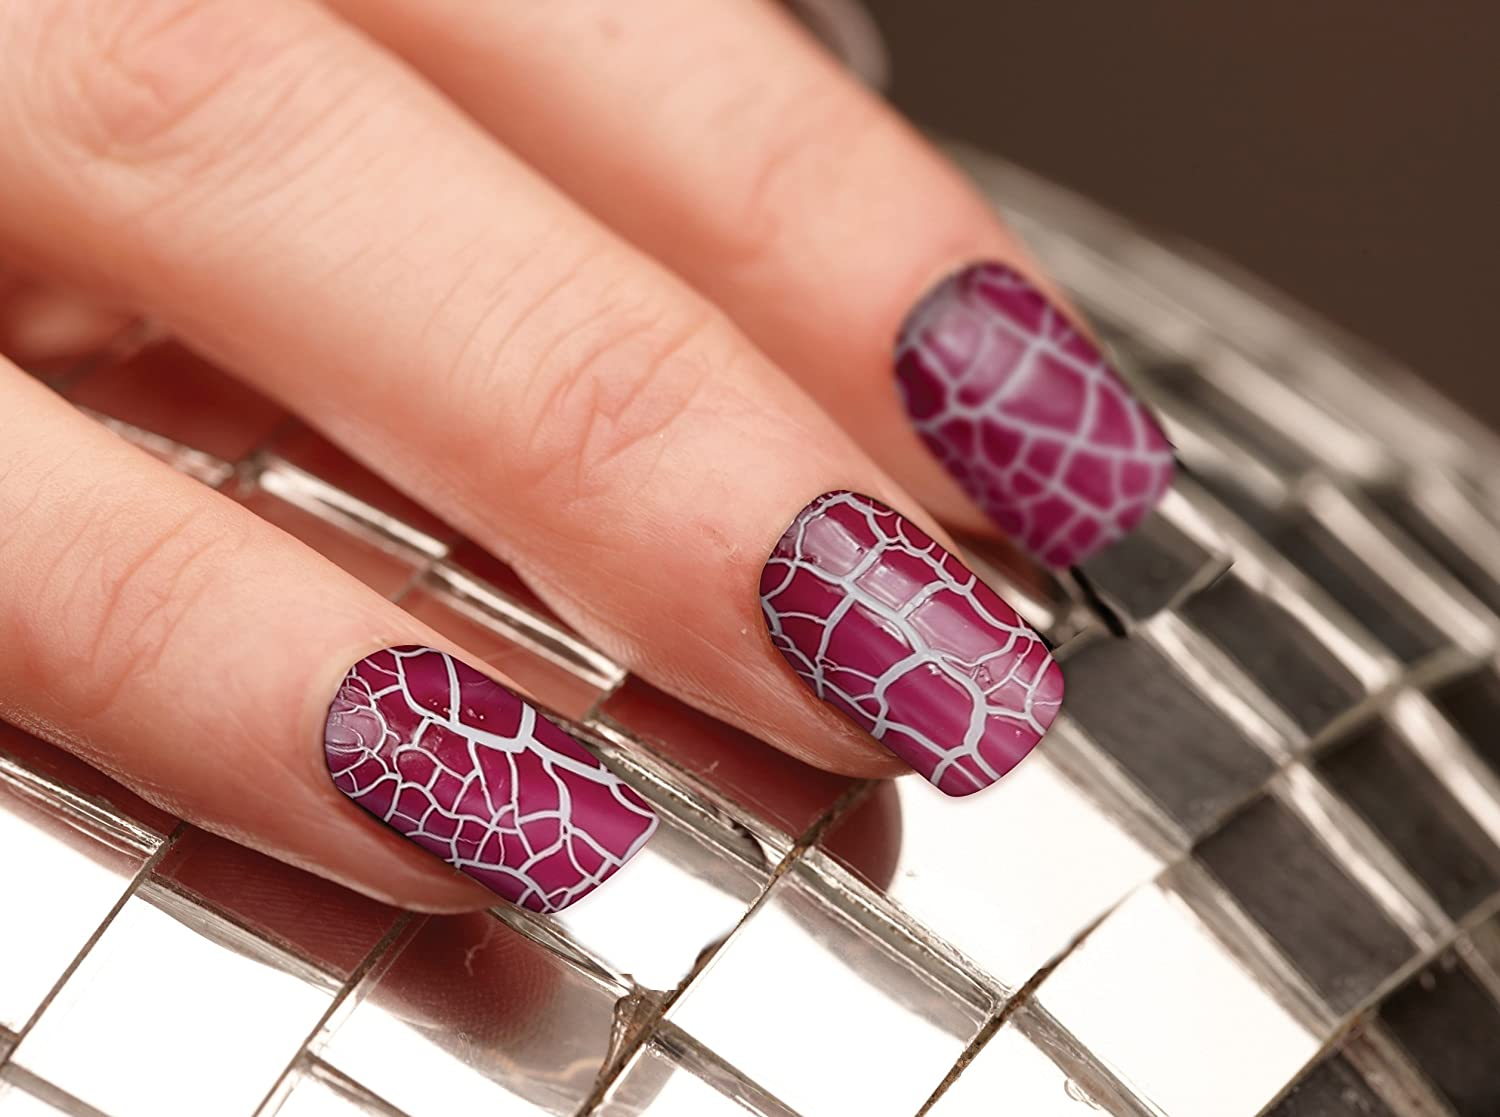 Rio Complete Nail Art Glitz and Glam Collection: Amazon.co.uk: Beauty